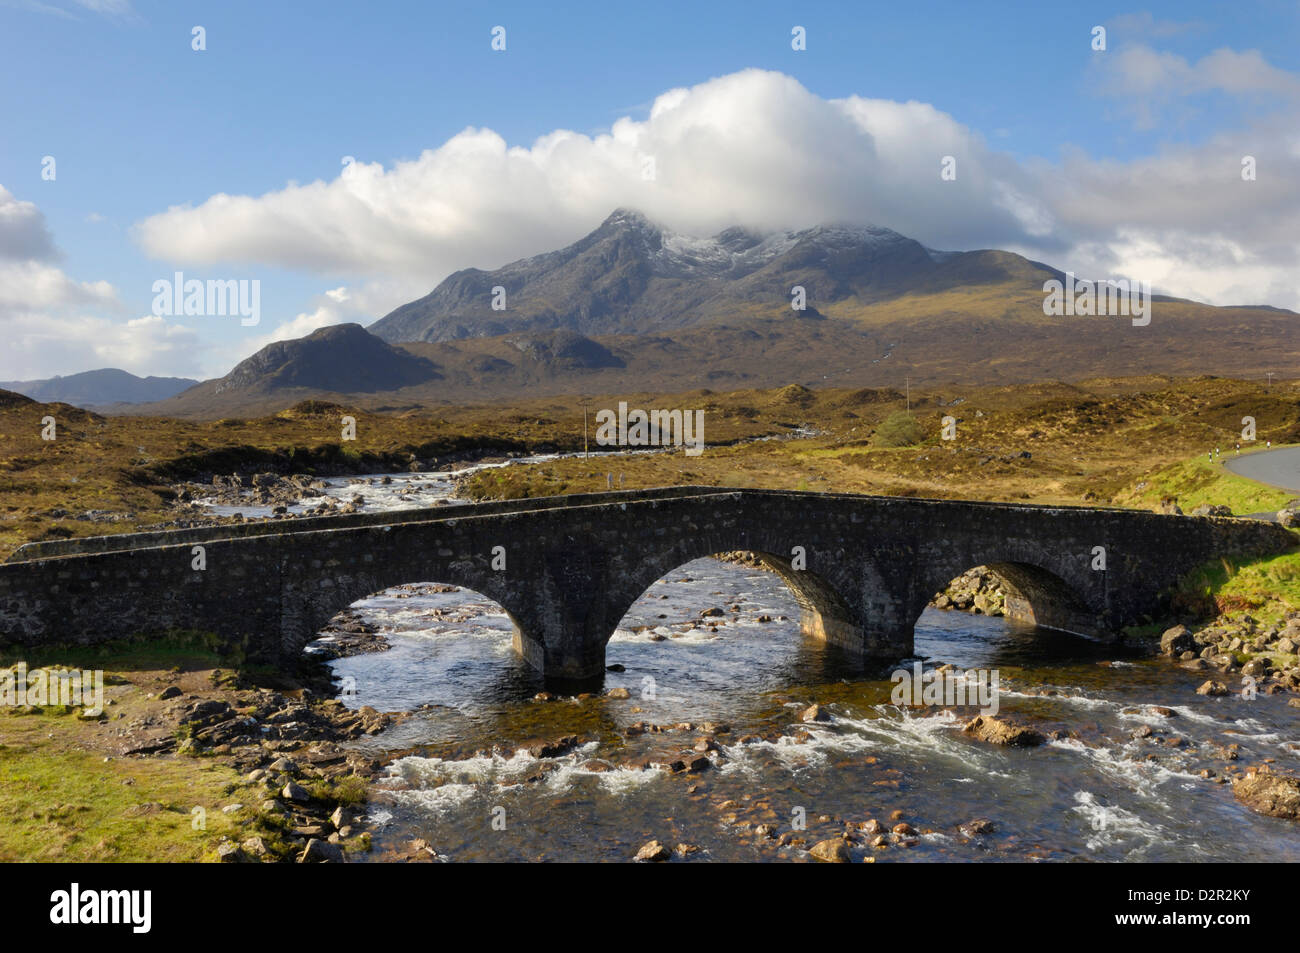 Sgurr nan Gillean from Sligachan, Isle of Skye, Inner Hebrides, Scotland, United Kingdom, Europe - Stock Image